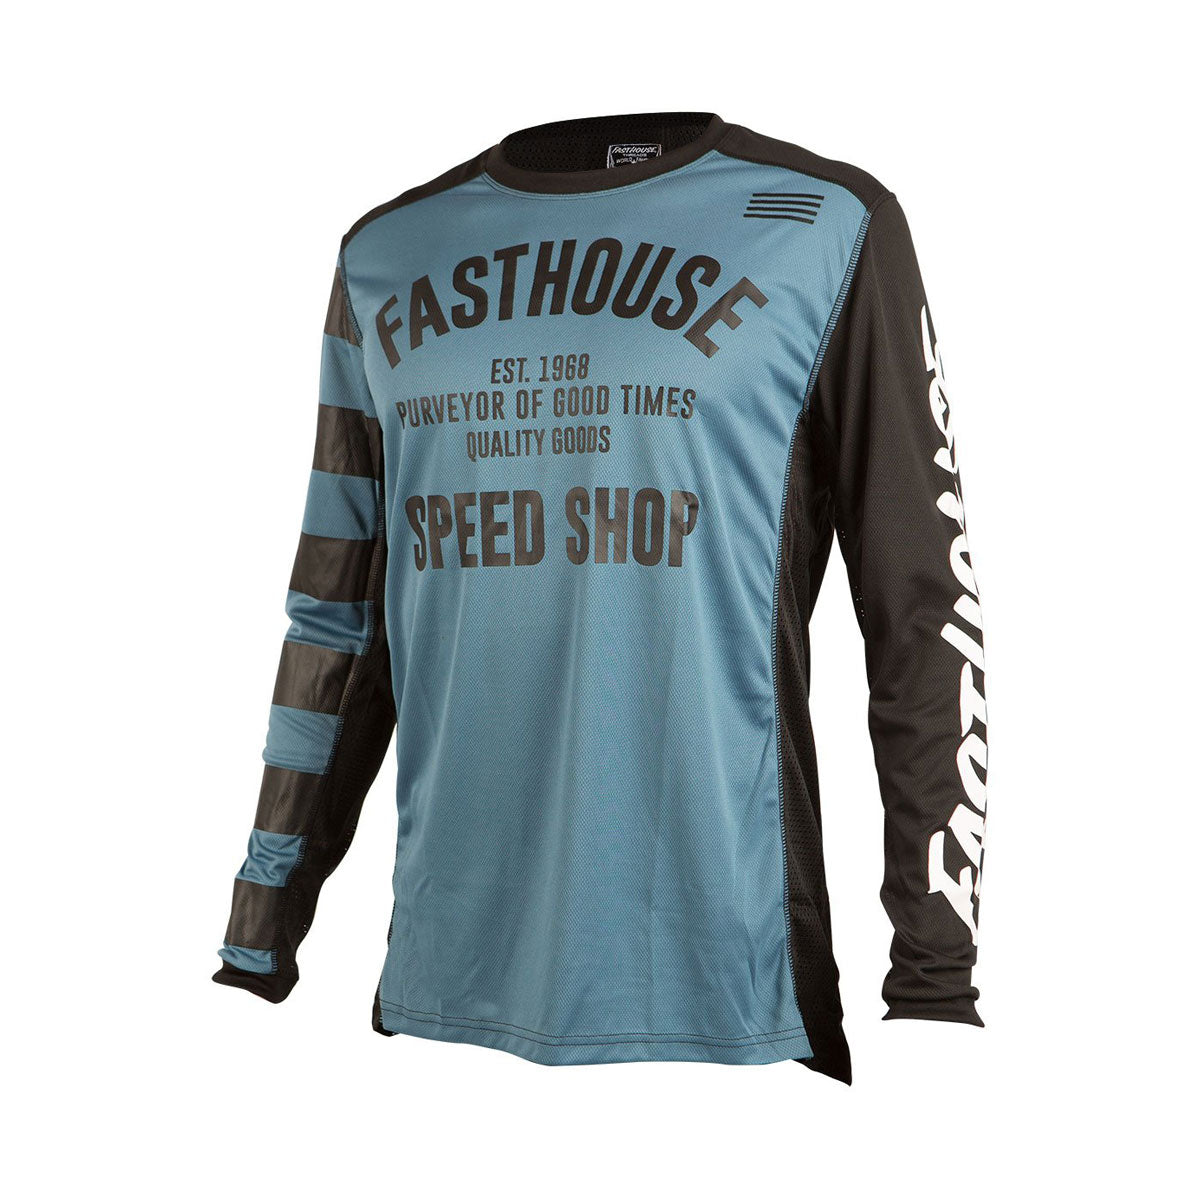 Fasthouse - Speed Shop L1 Youth Jersey - Slate Blue